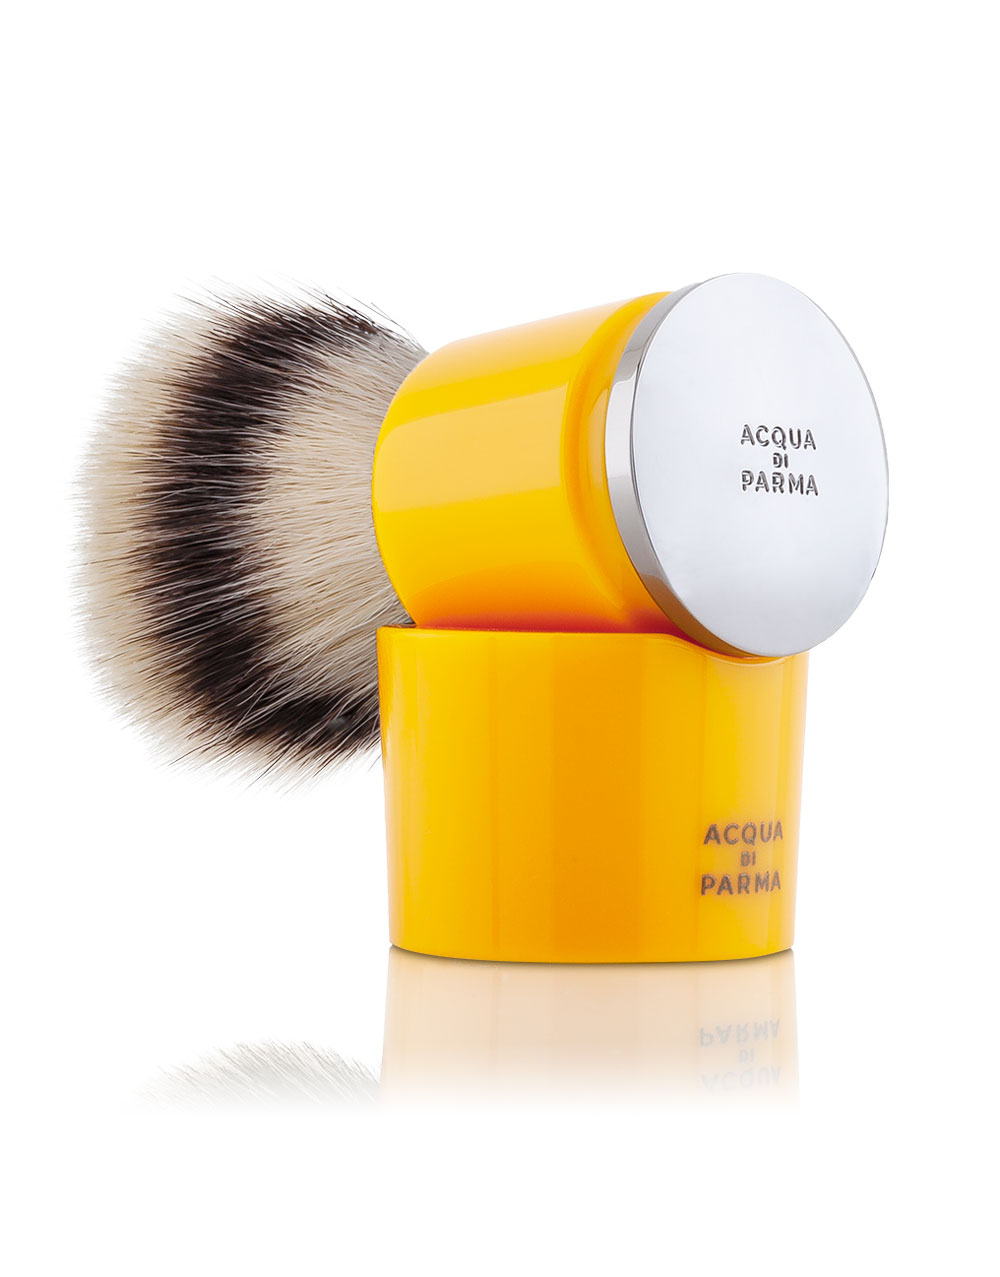 El Libro Amarillo -  The shaving brush Acqua di Parma